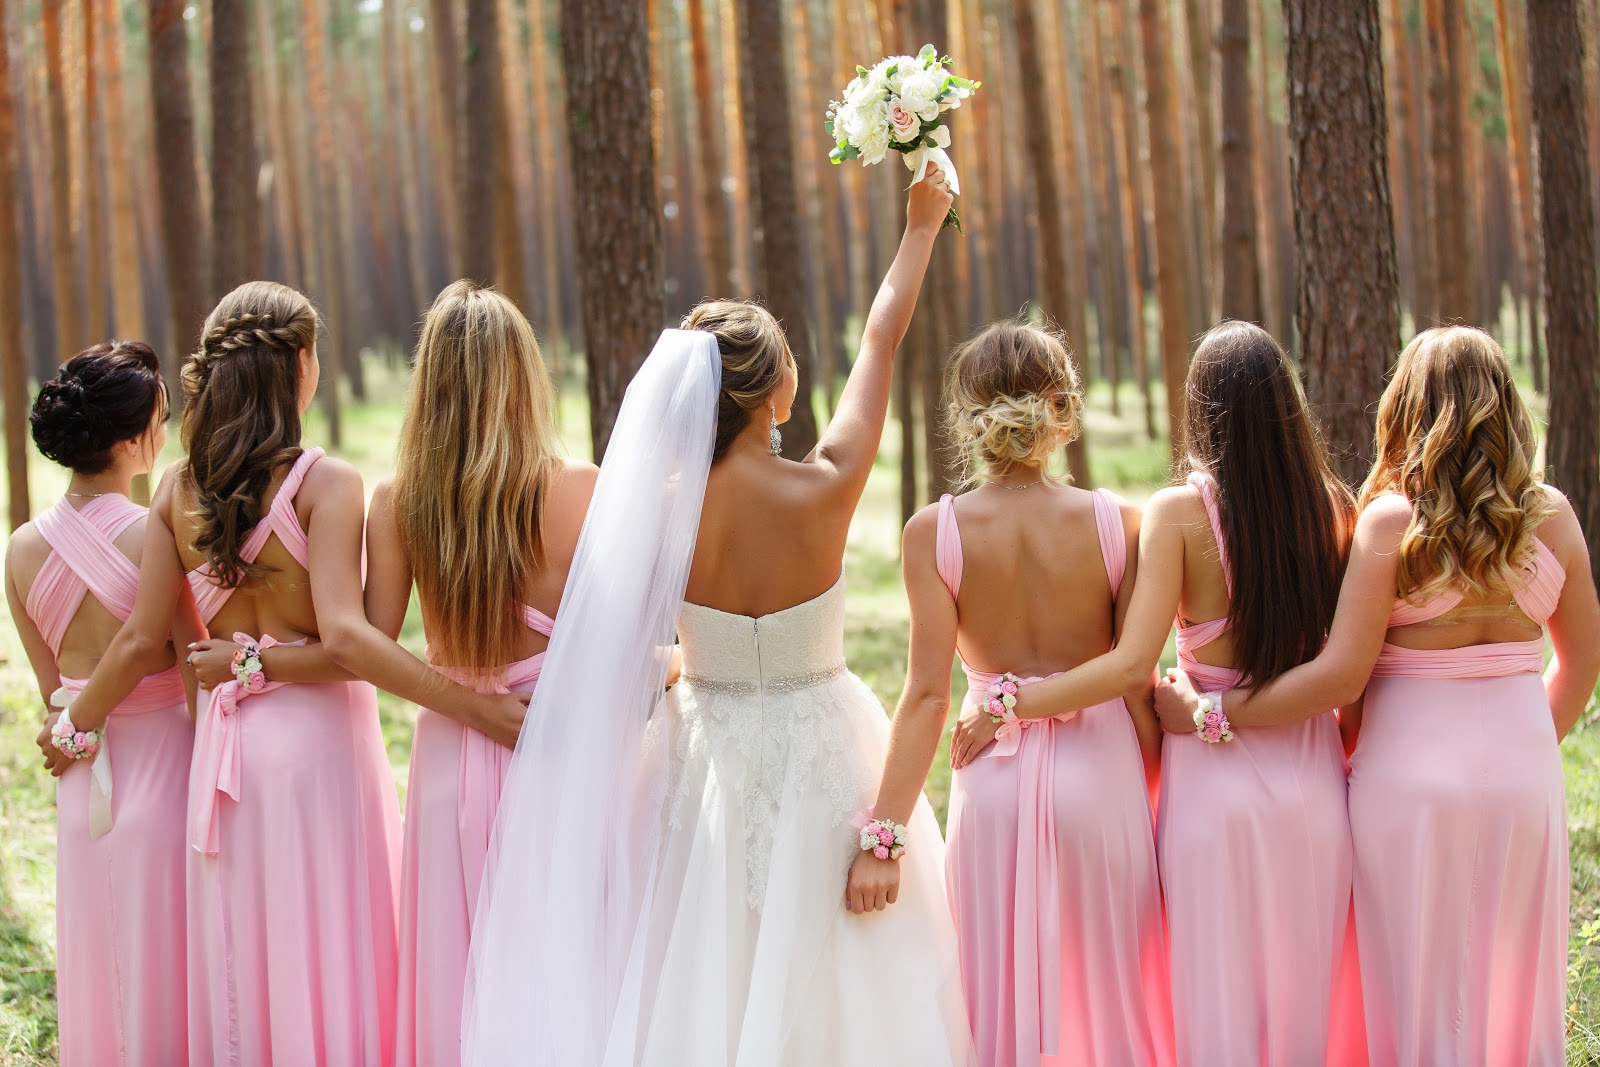 Bride with her bridesmaids in pink dresses during the wedding day